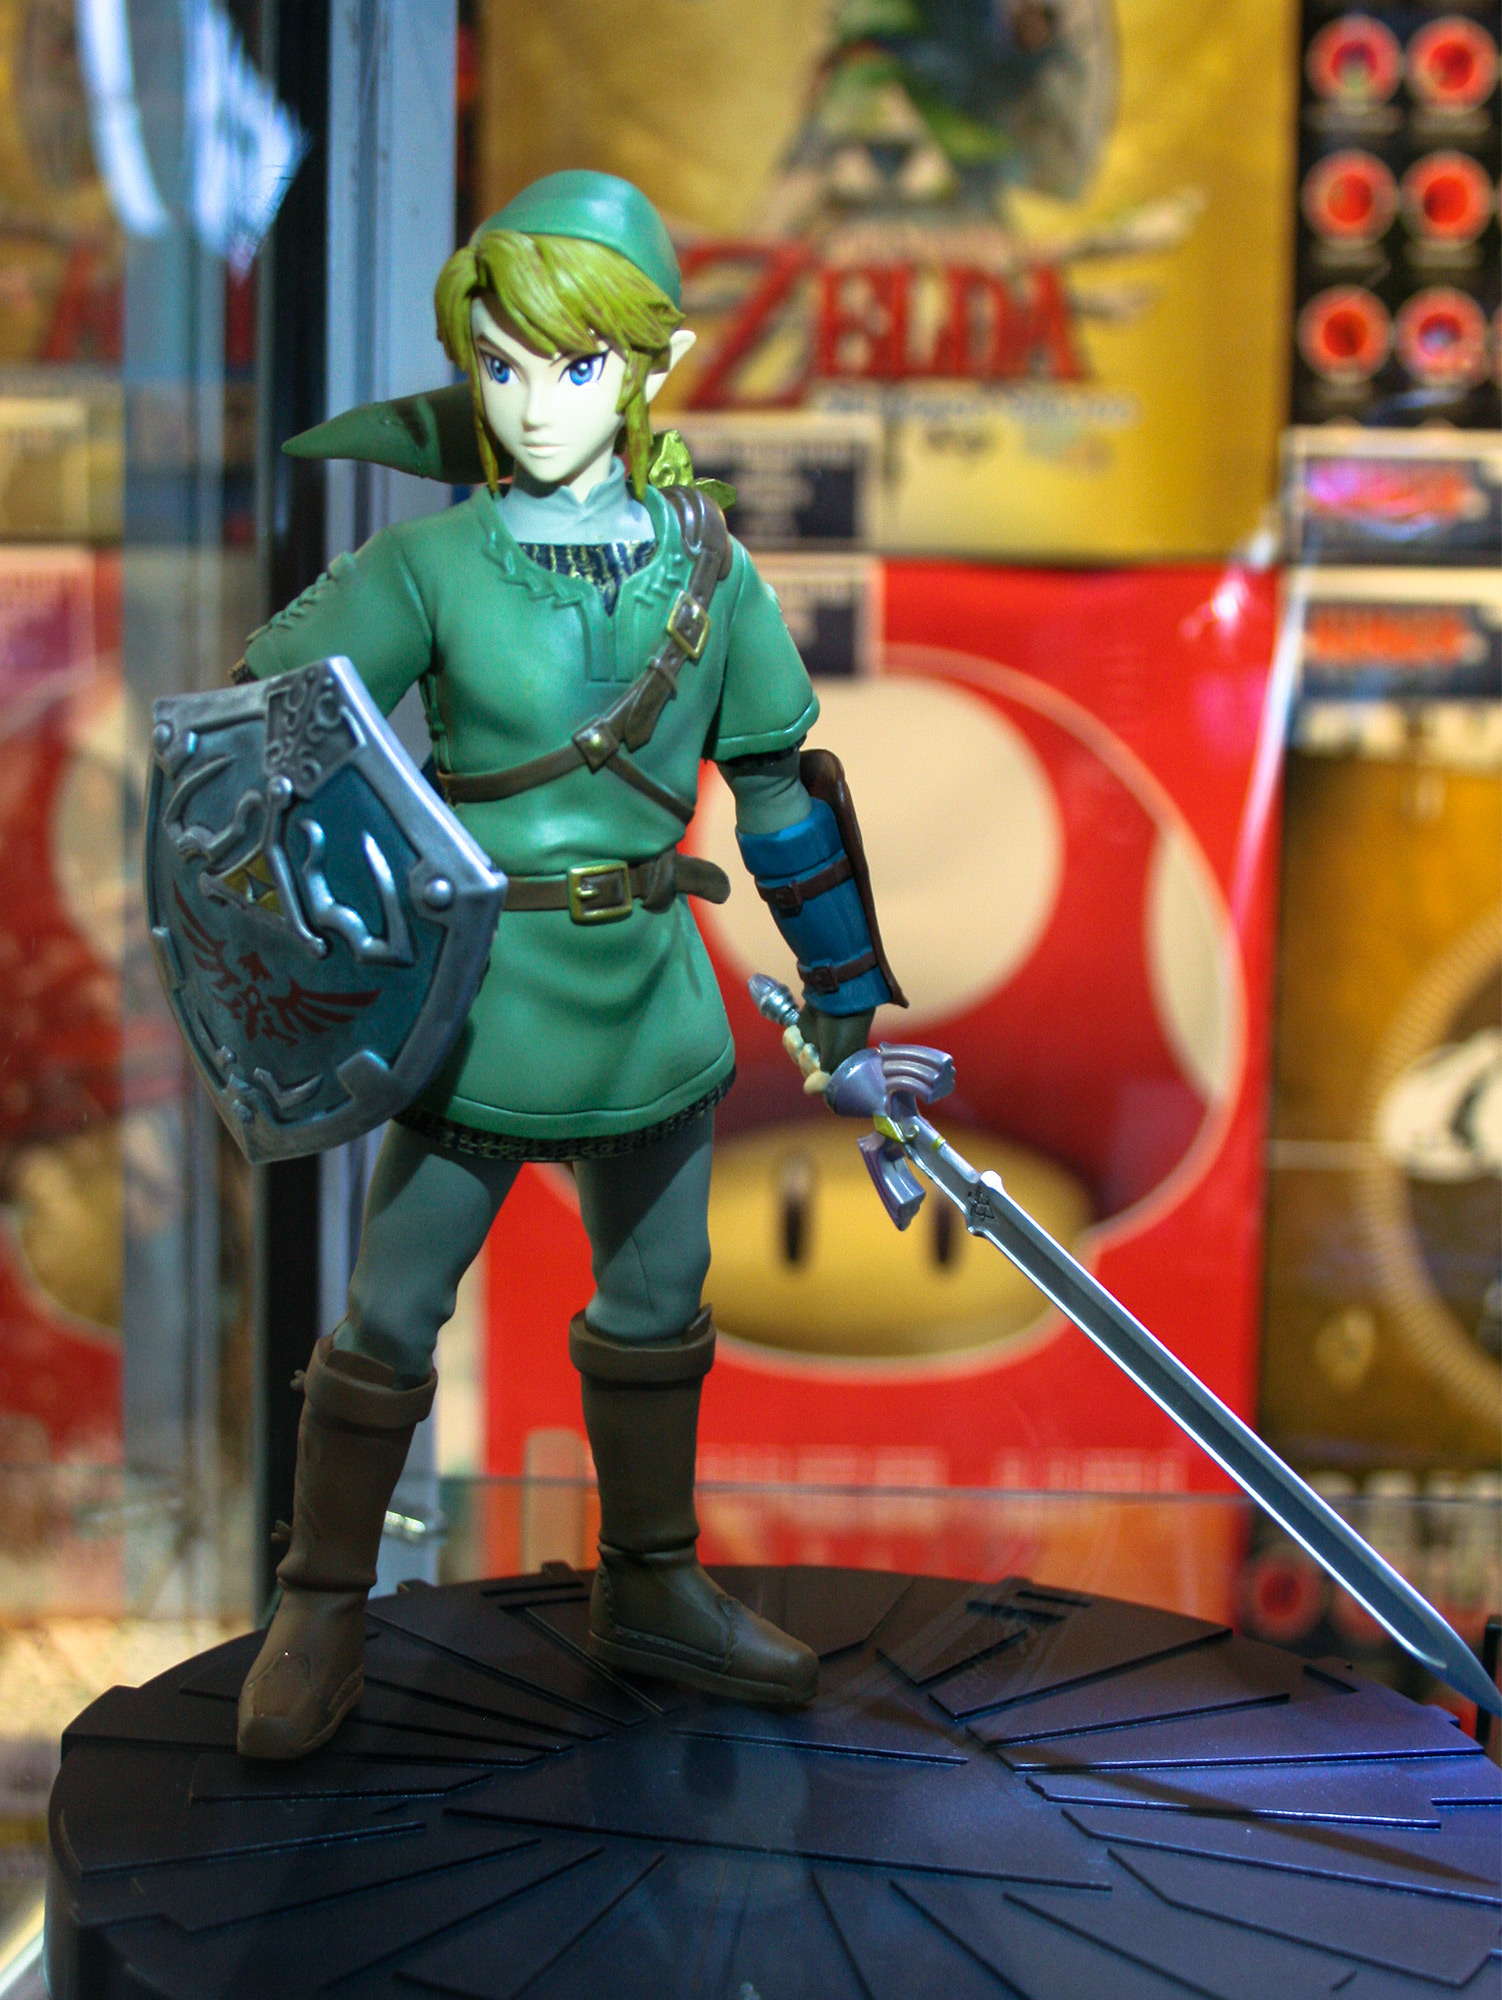 PAX Aus - Melbourne 2014 - Link Figure at Kings Comics